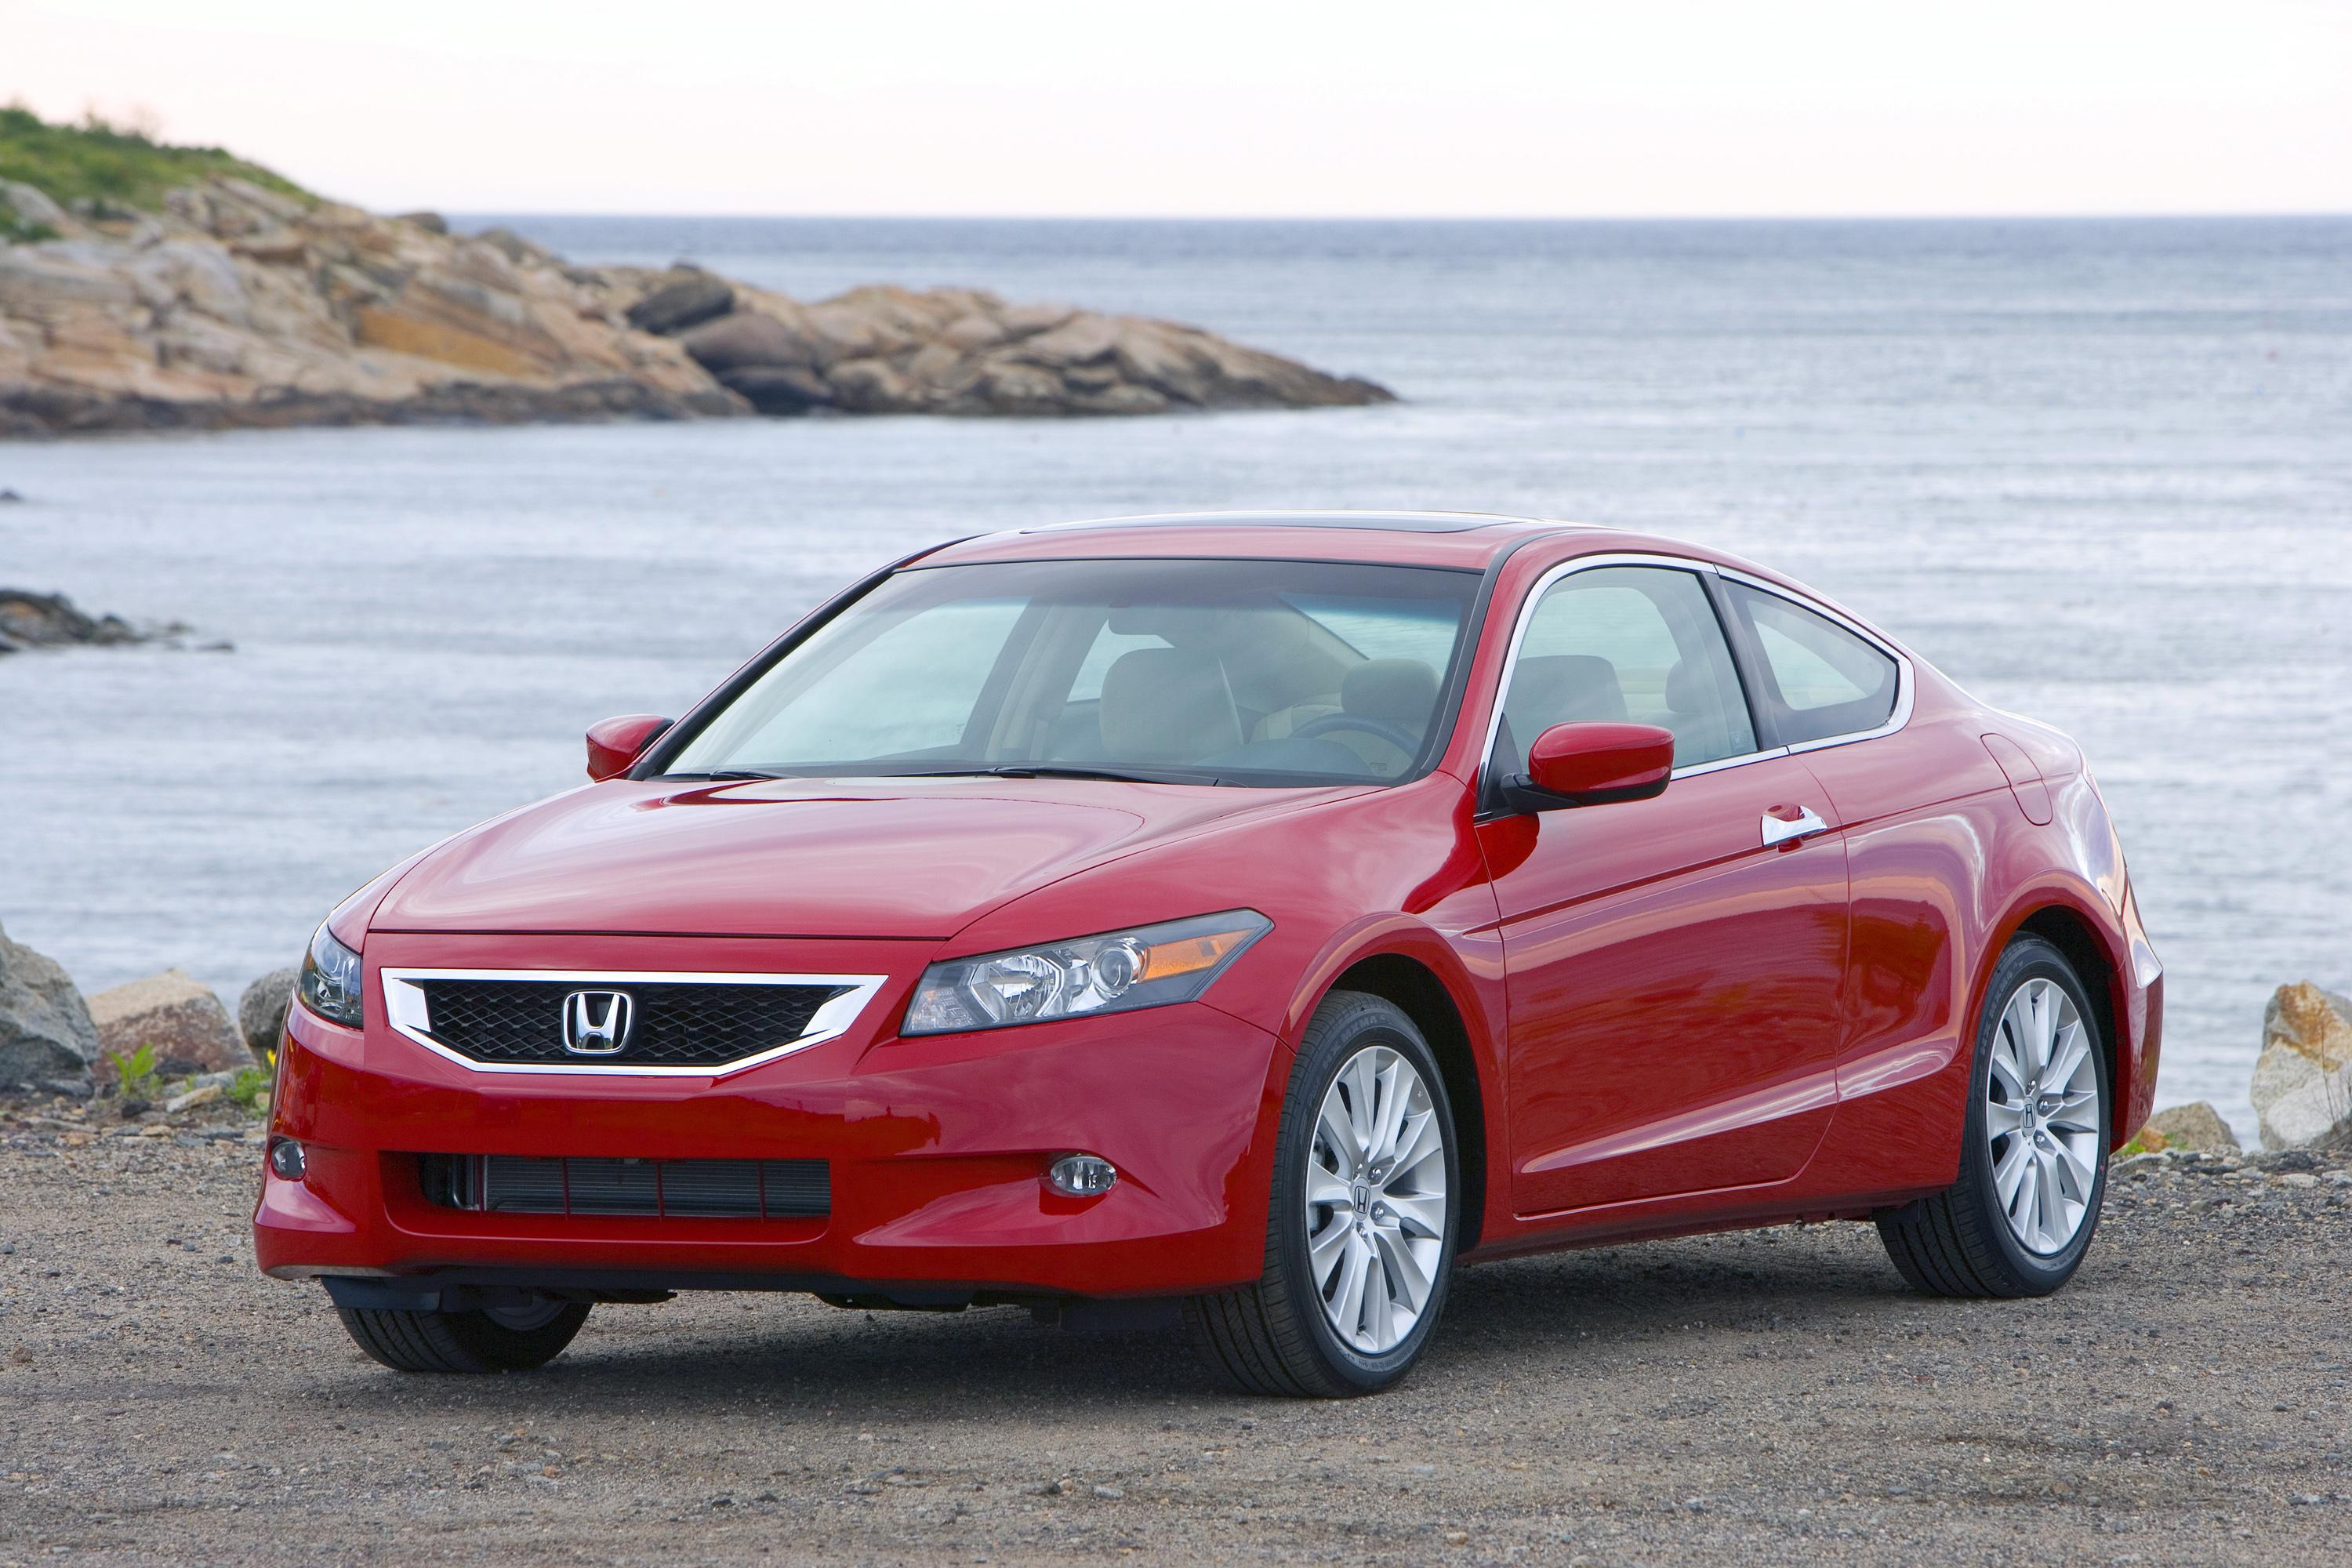 2008-honda-accord-ex-l-v-6-with-6-speed-manual-transmission-14.jpg ...